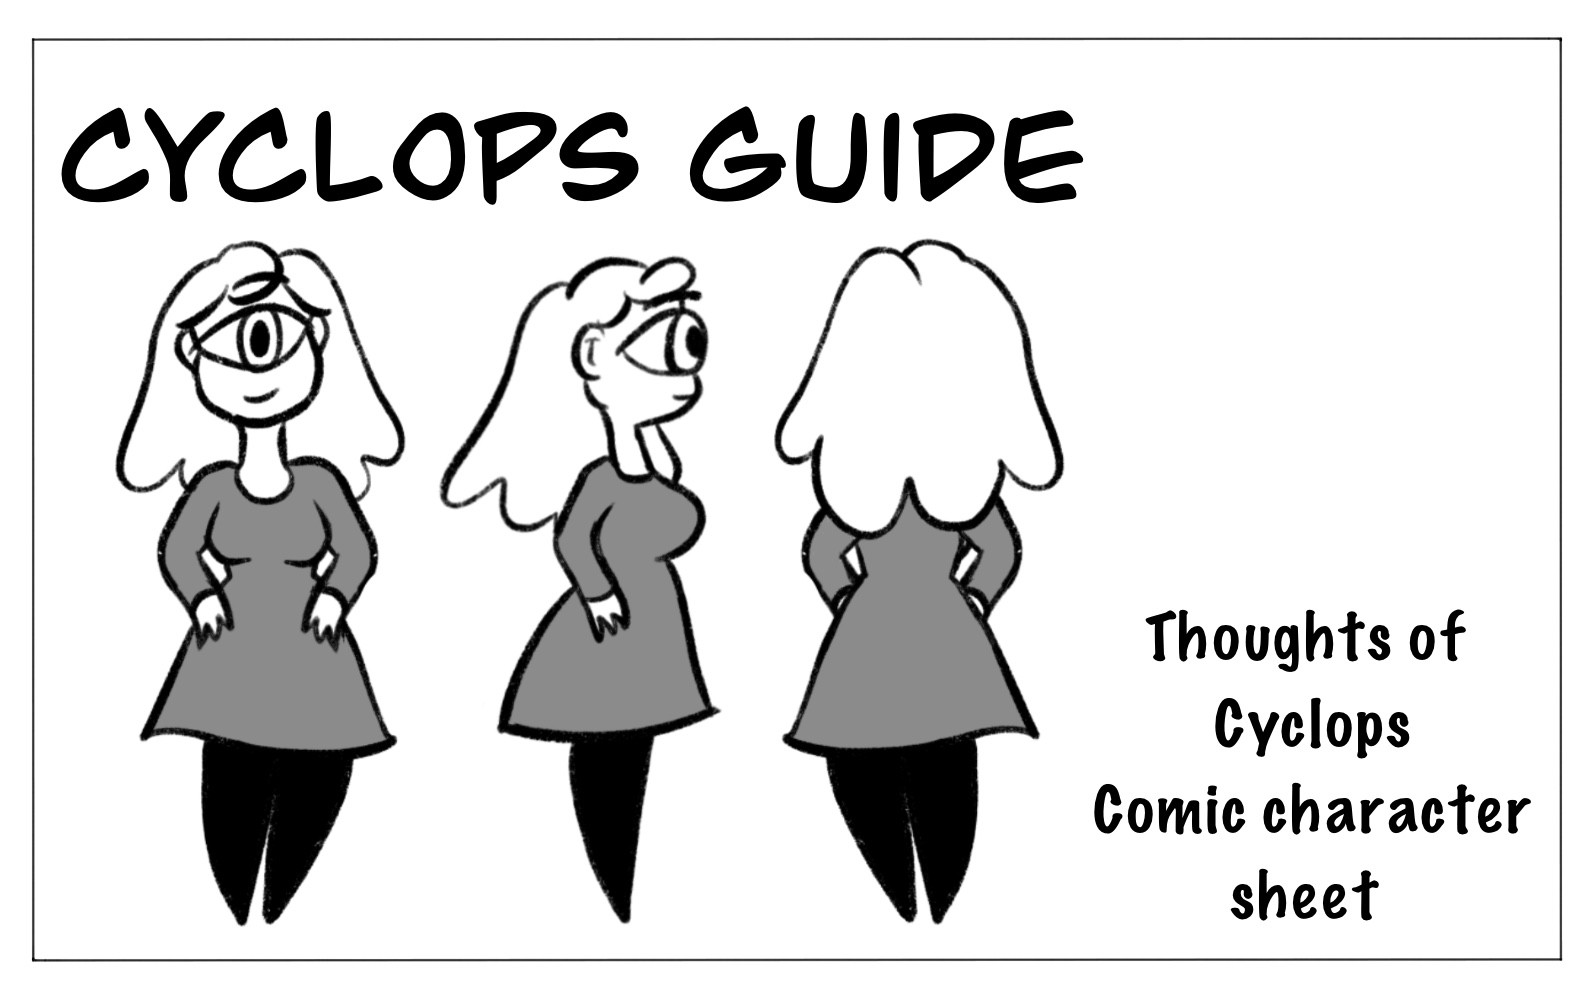 Character cyclops Comic sheet